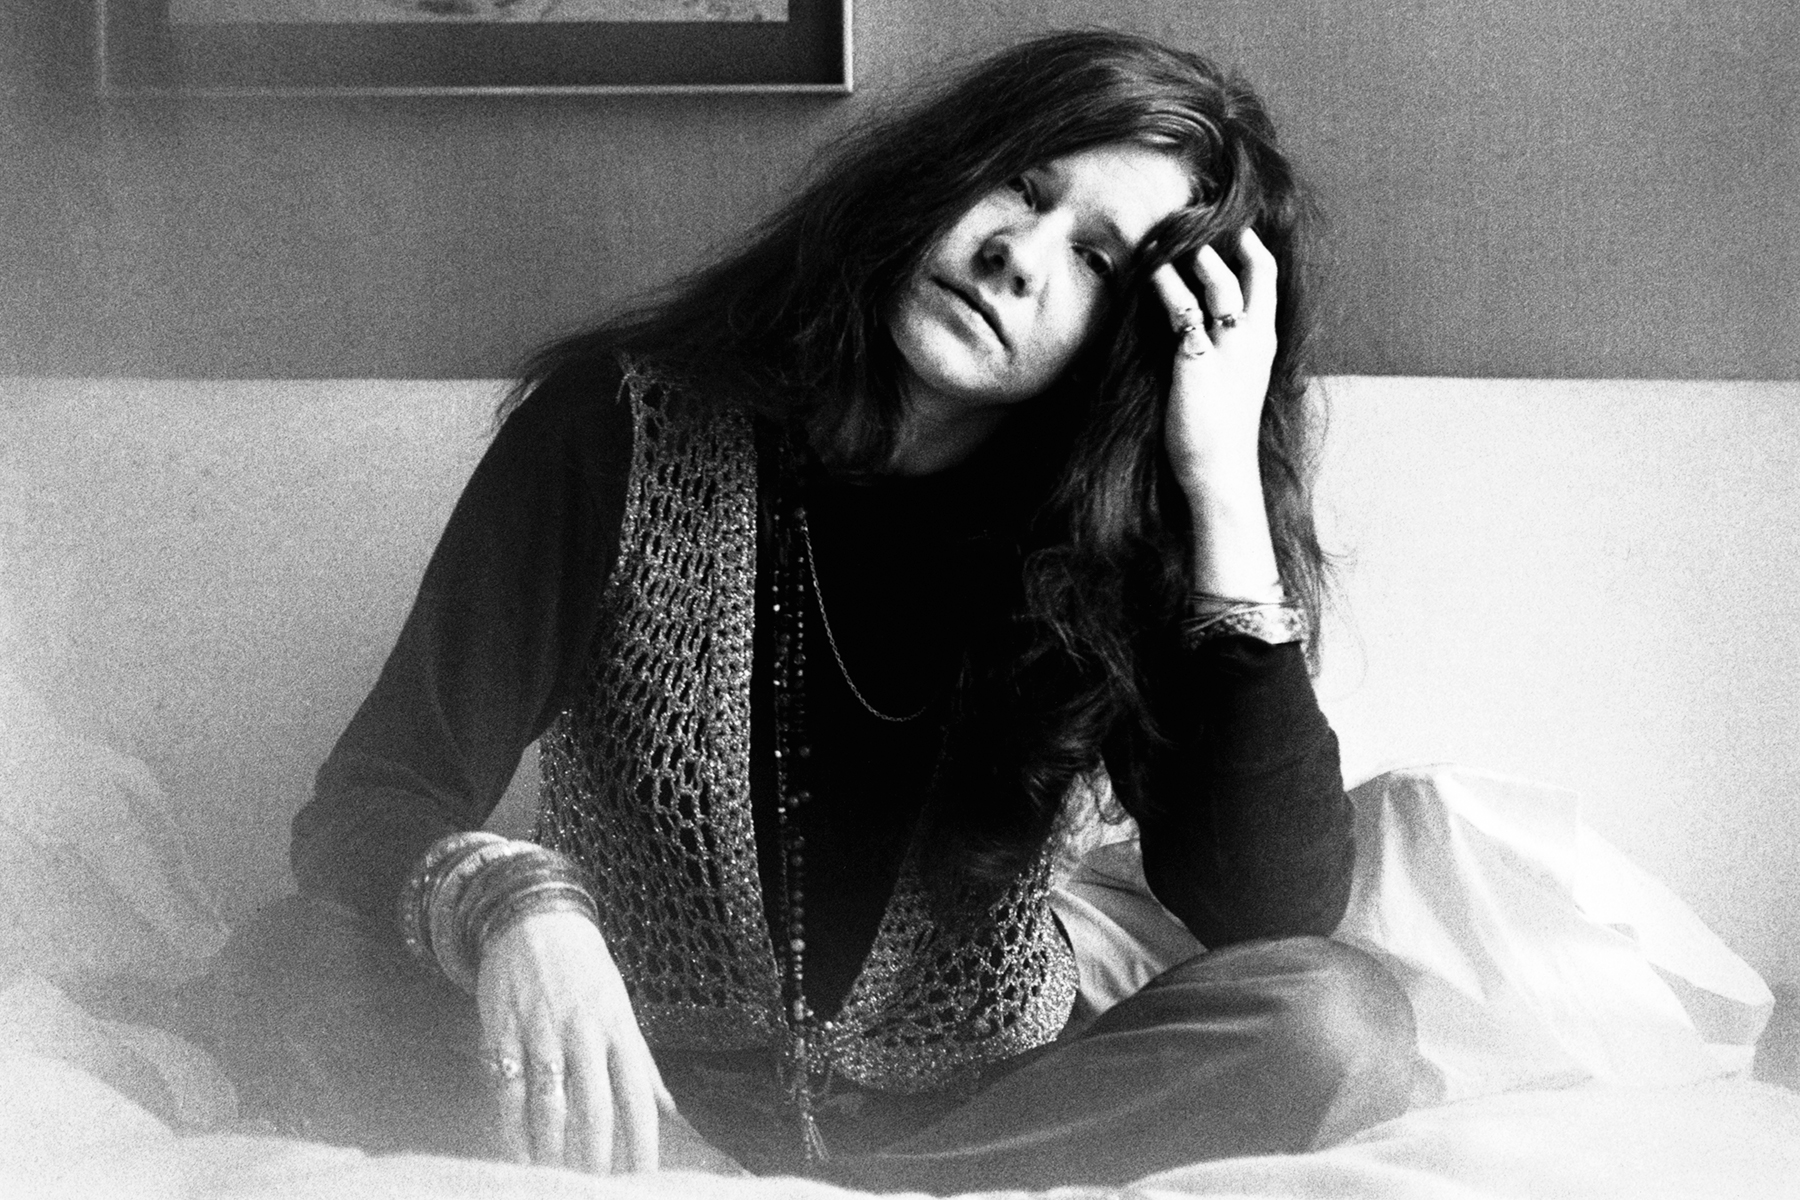 A Close Friend Offers a Fresh Perspective on Janis Joplin's Tragic Story